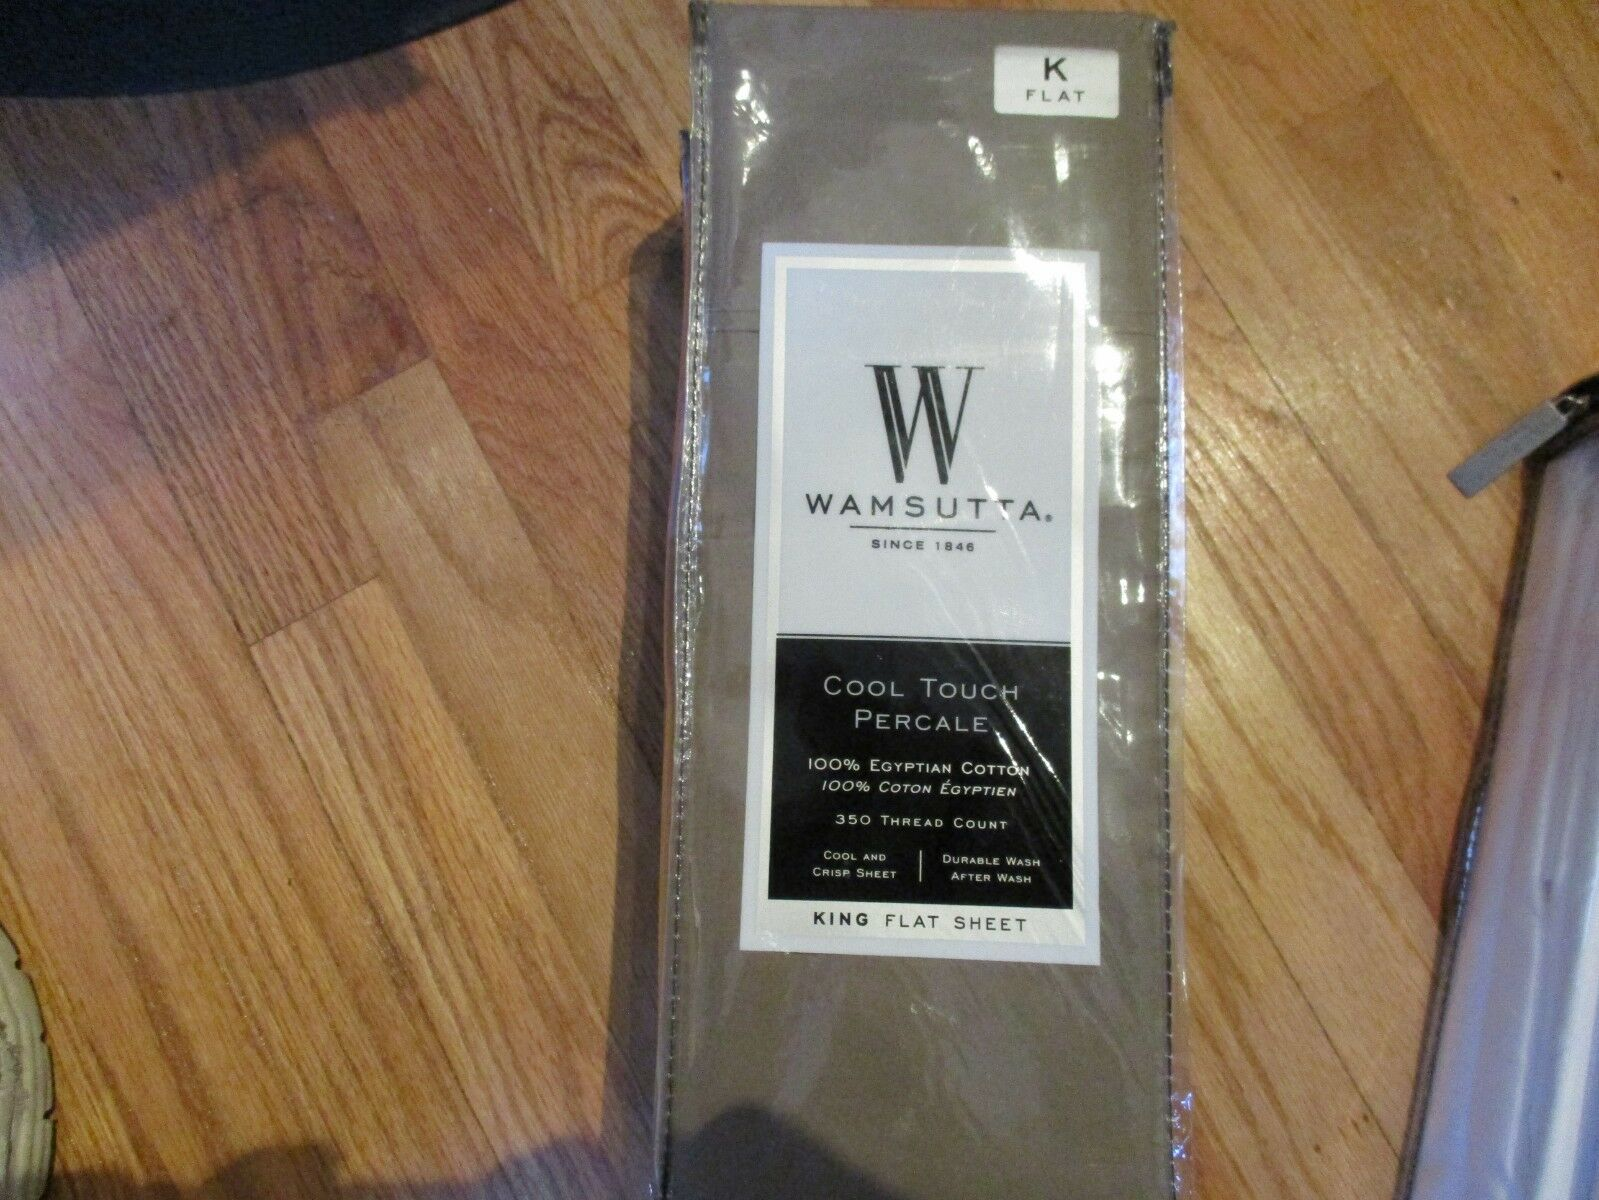 Wamsutta Cool Touch Percale CANVAS KING Flat Sheet 350ct 100% Egyptian CottonNEW